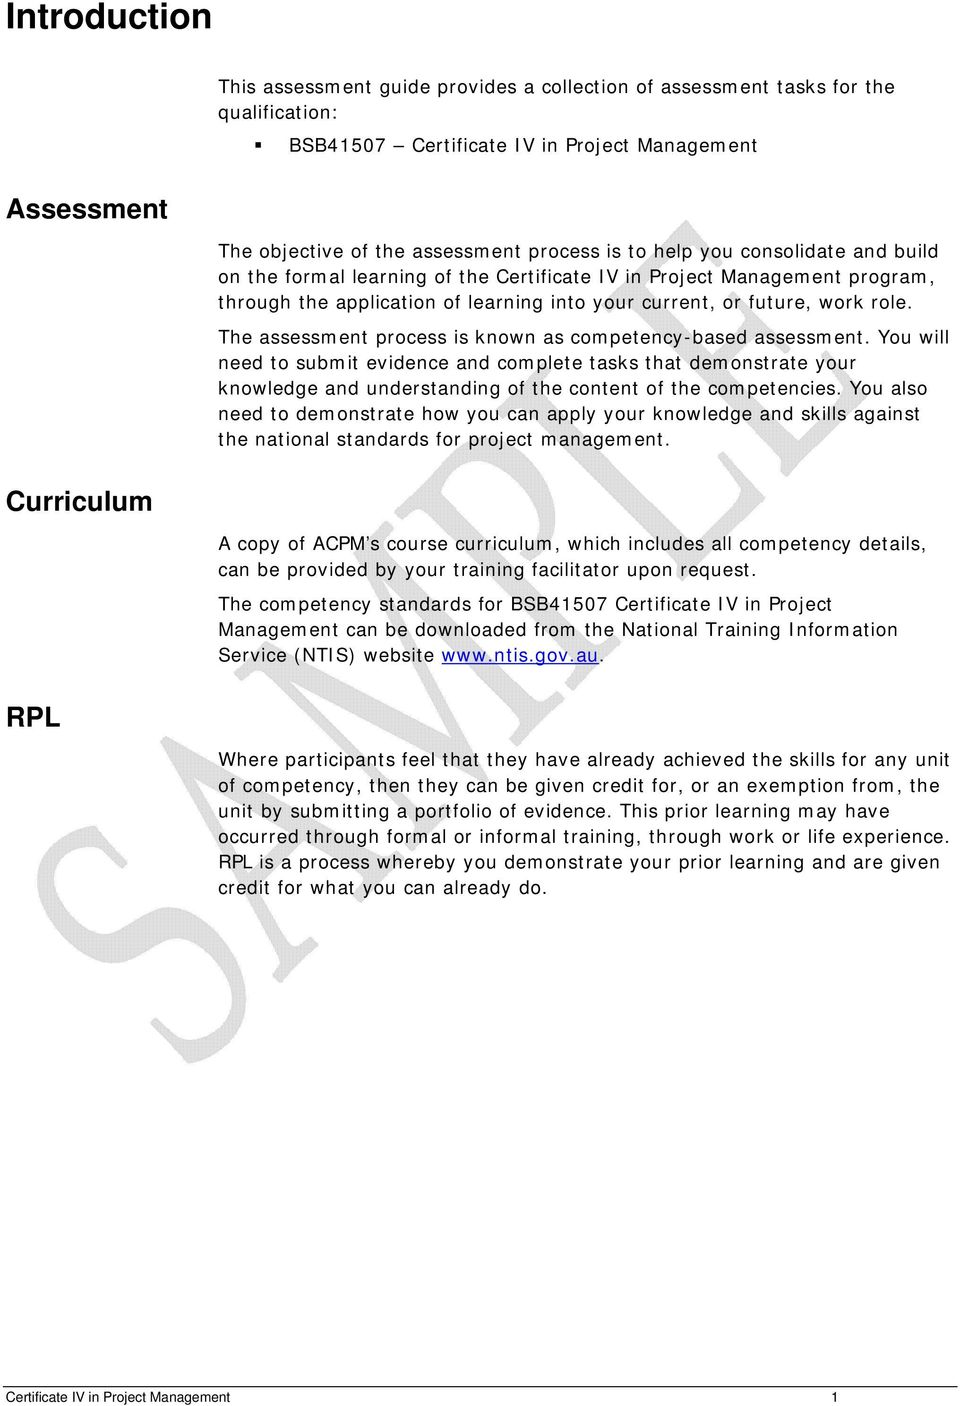 Assessment Guide Certificate Iv In Project Management Bsb Pdf